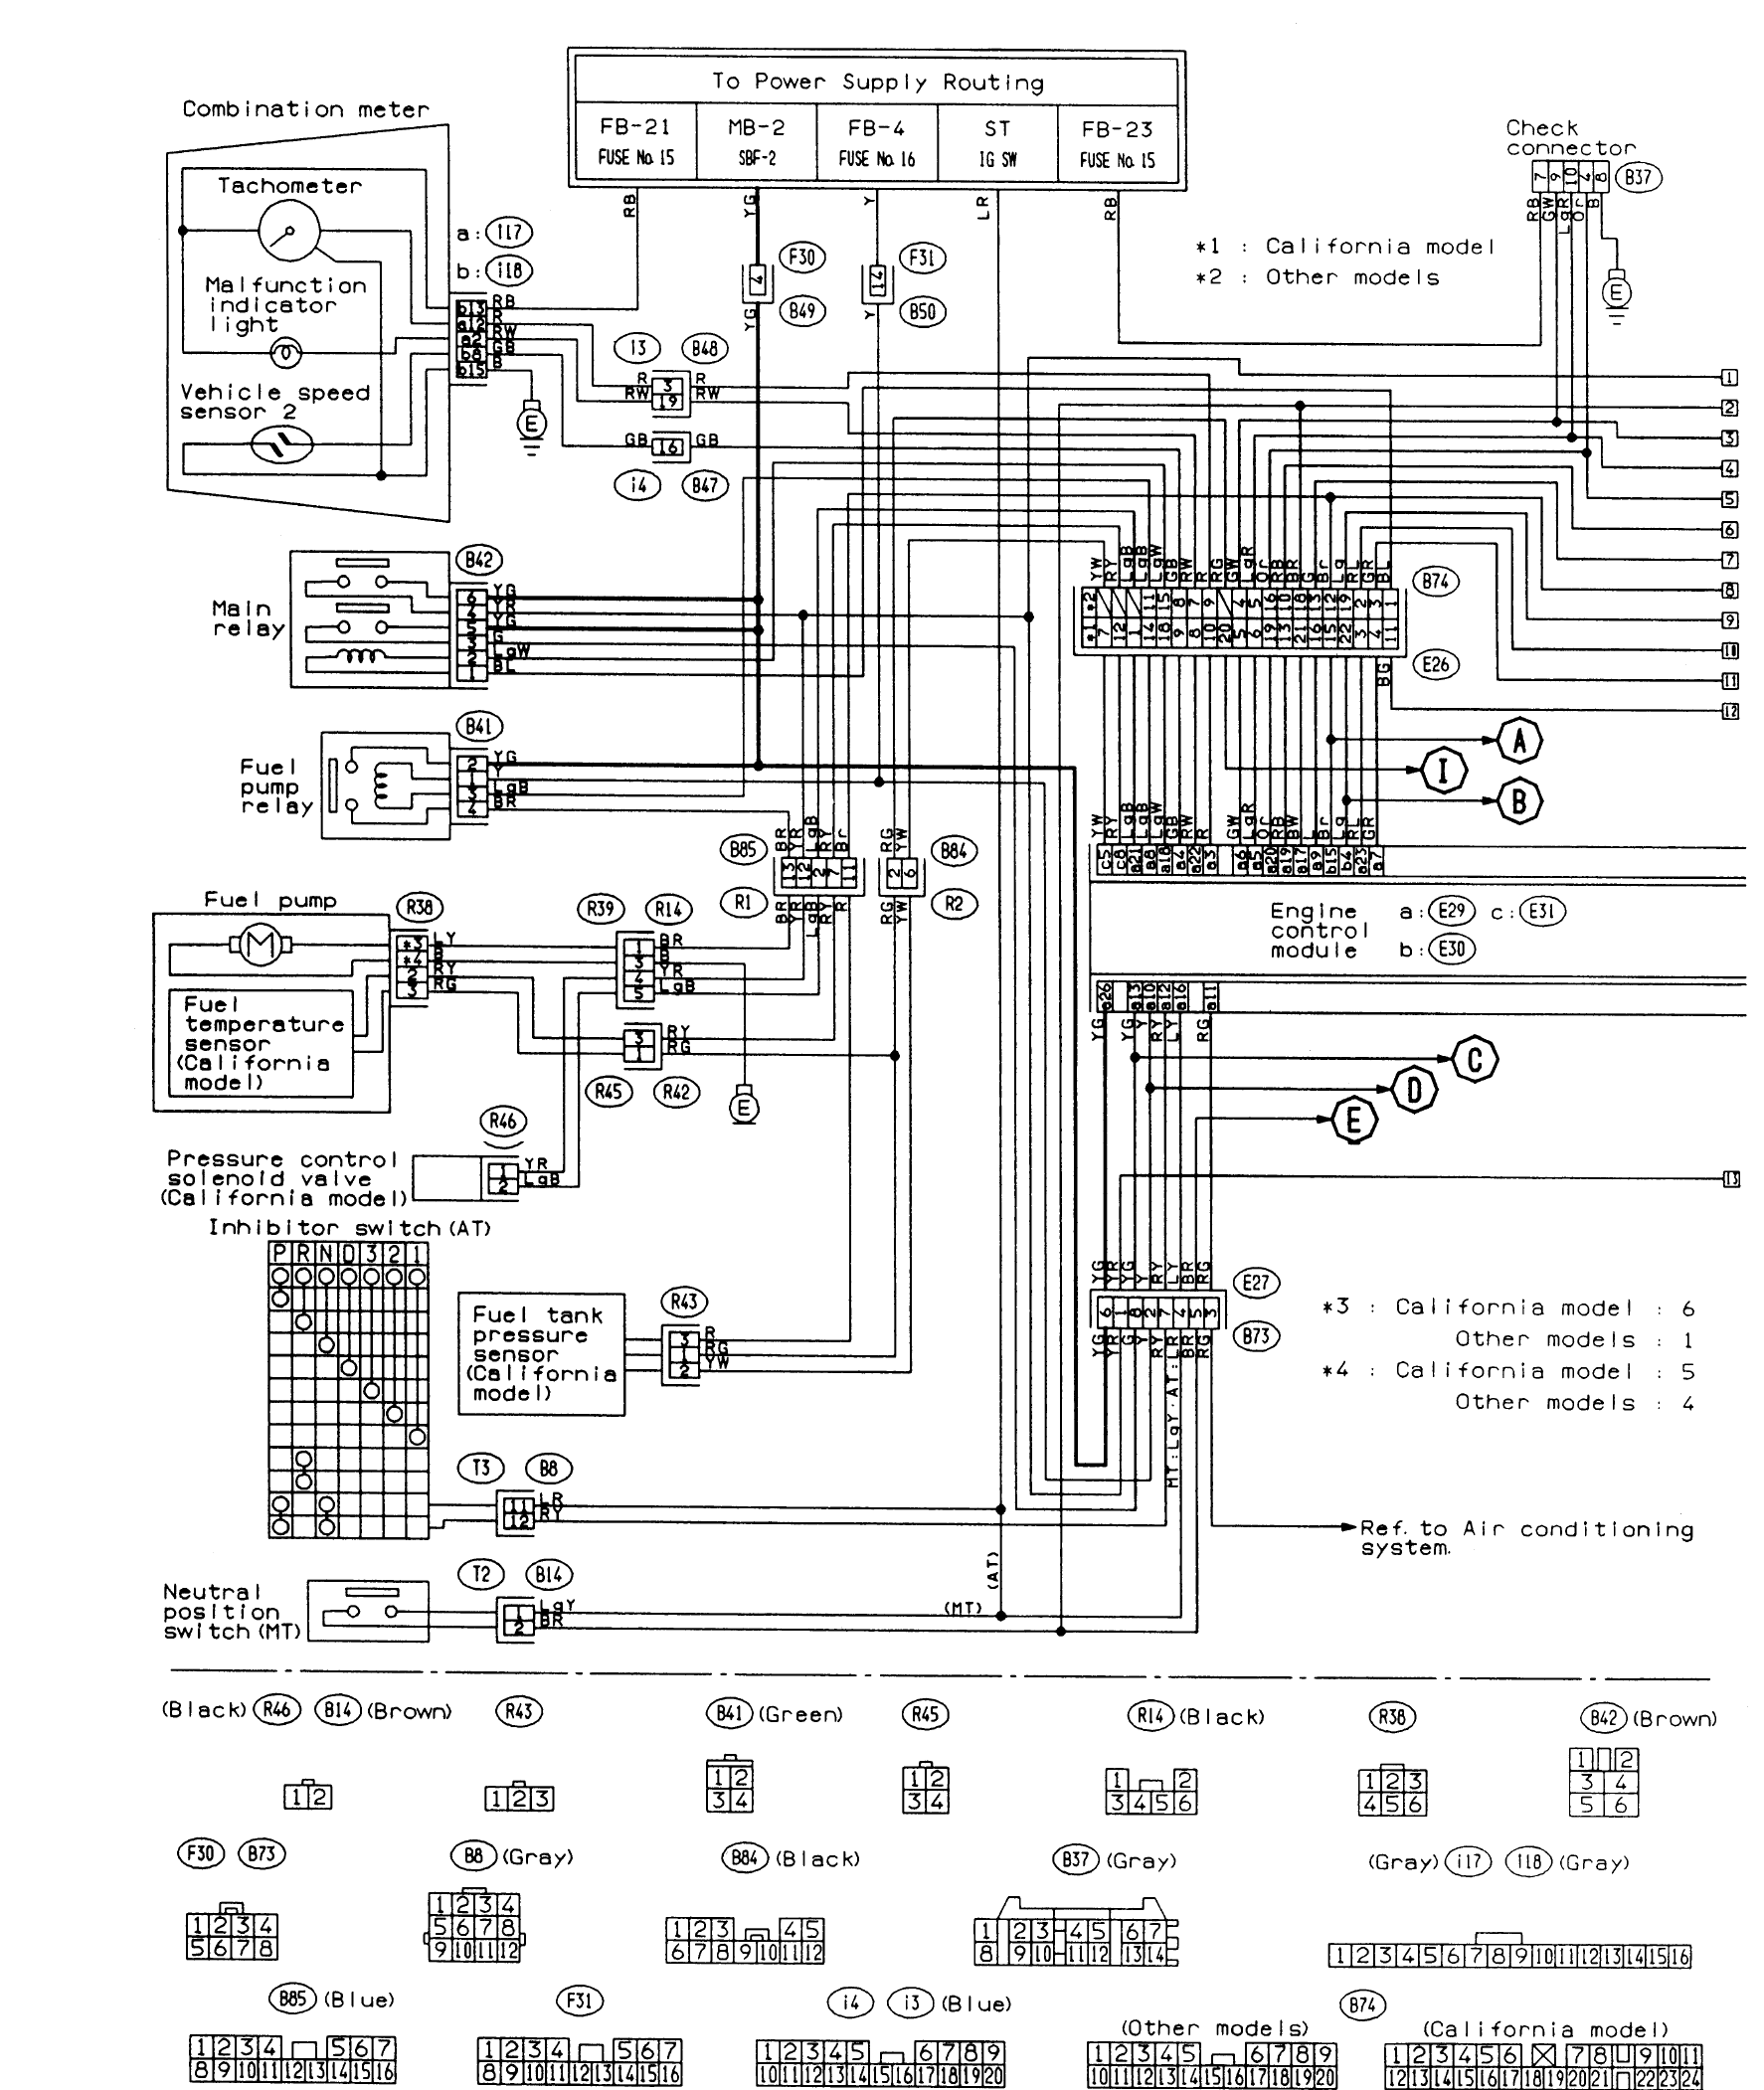 small resolution of electrical diagram for ac unit in 2009 subaru forester pinouts for 95 impreza 1 8 ecu nasioc